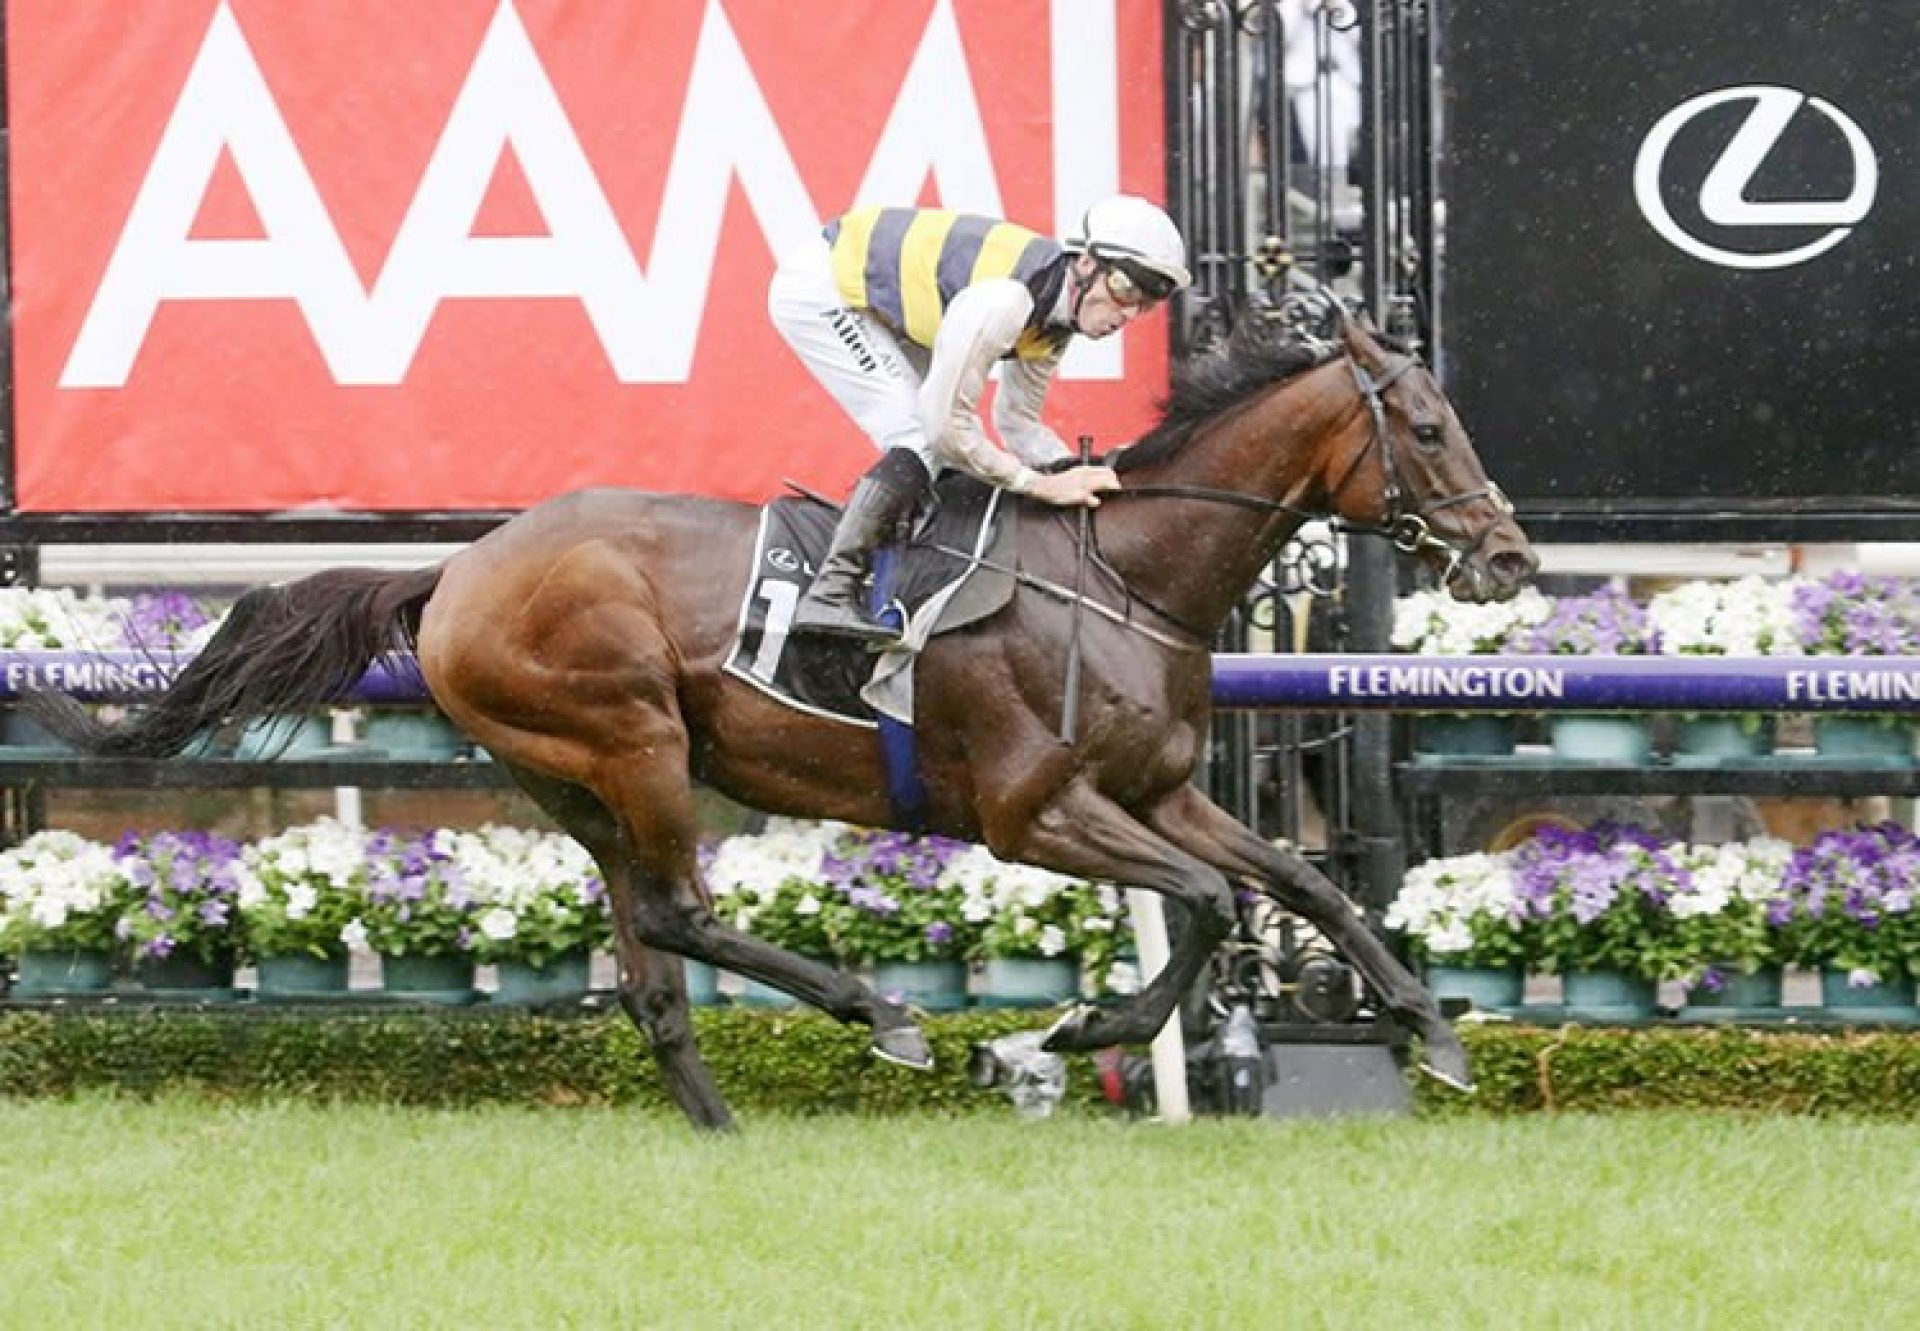 Downdraft (Camelot) winning the Gr.3 Hotham Handicap at Flemington